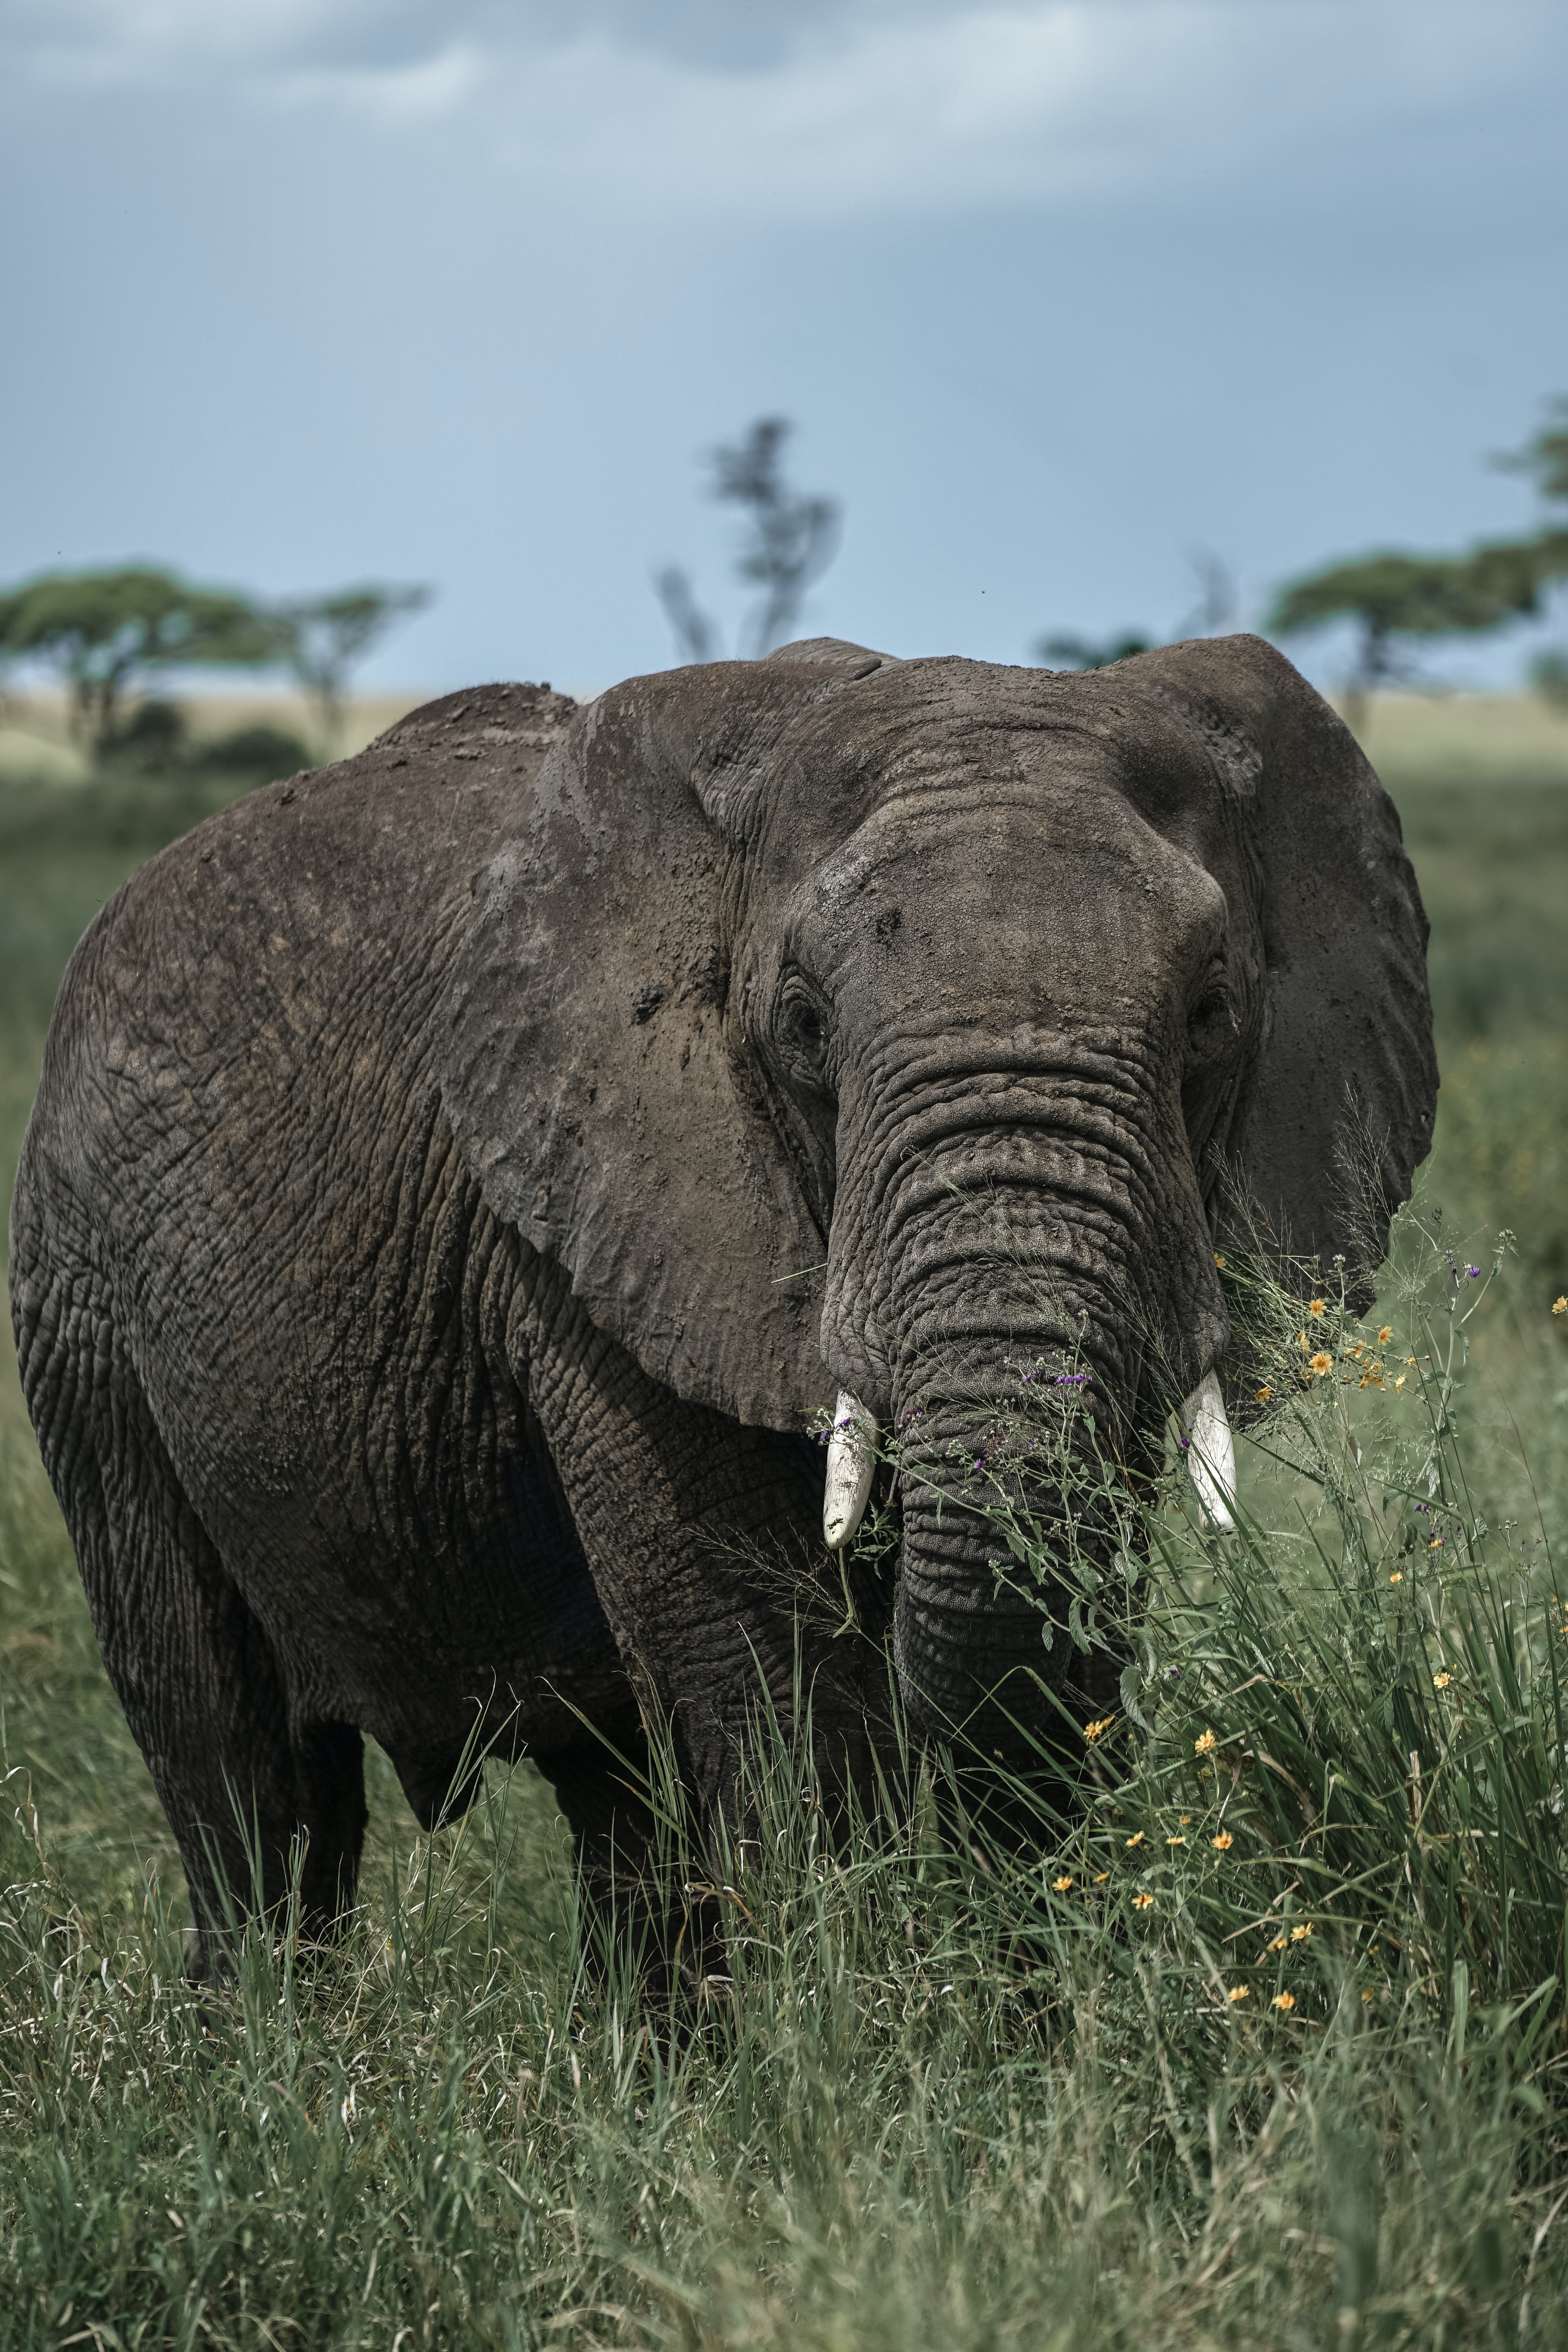 144429 download wallpaper Animals, Elephant, Tusks, Grass, Animal screensavers and pictures for free